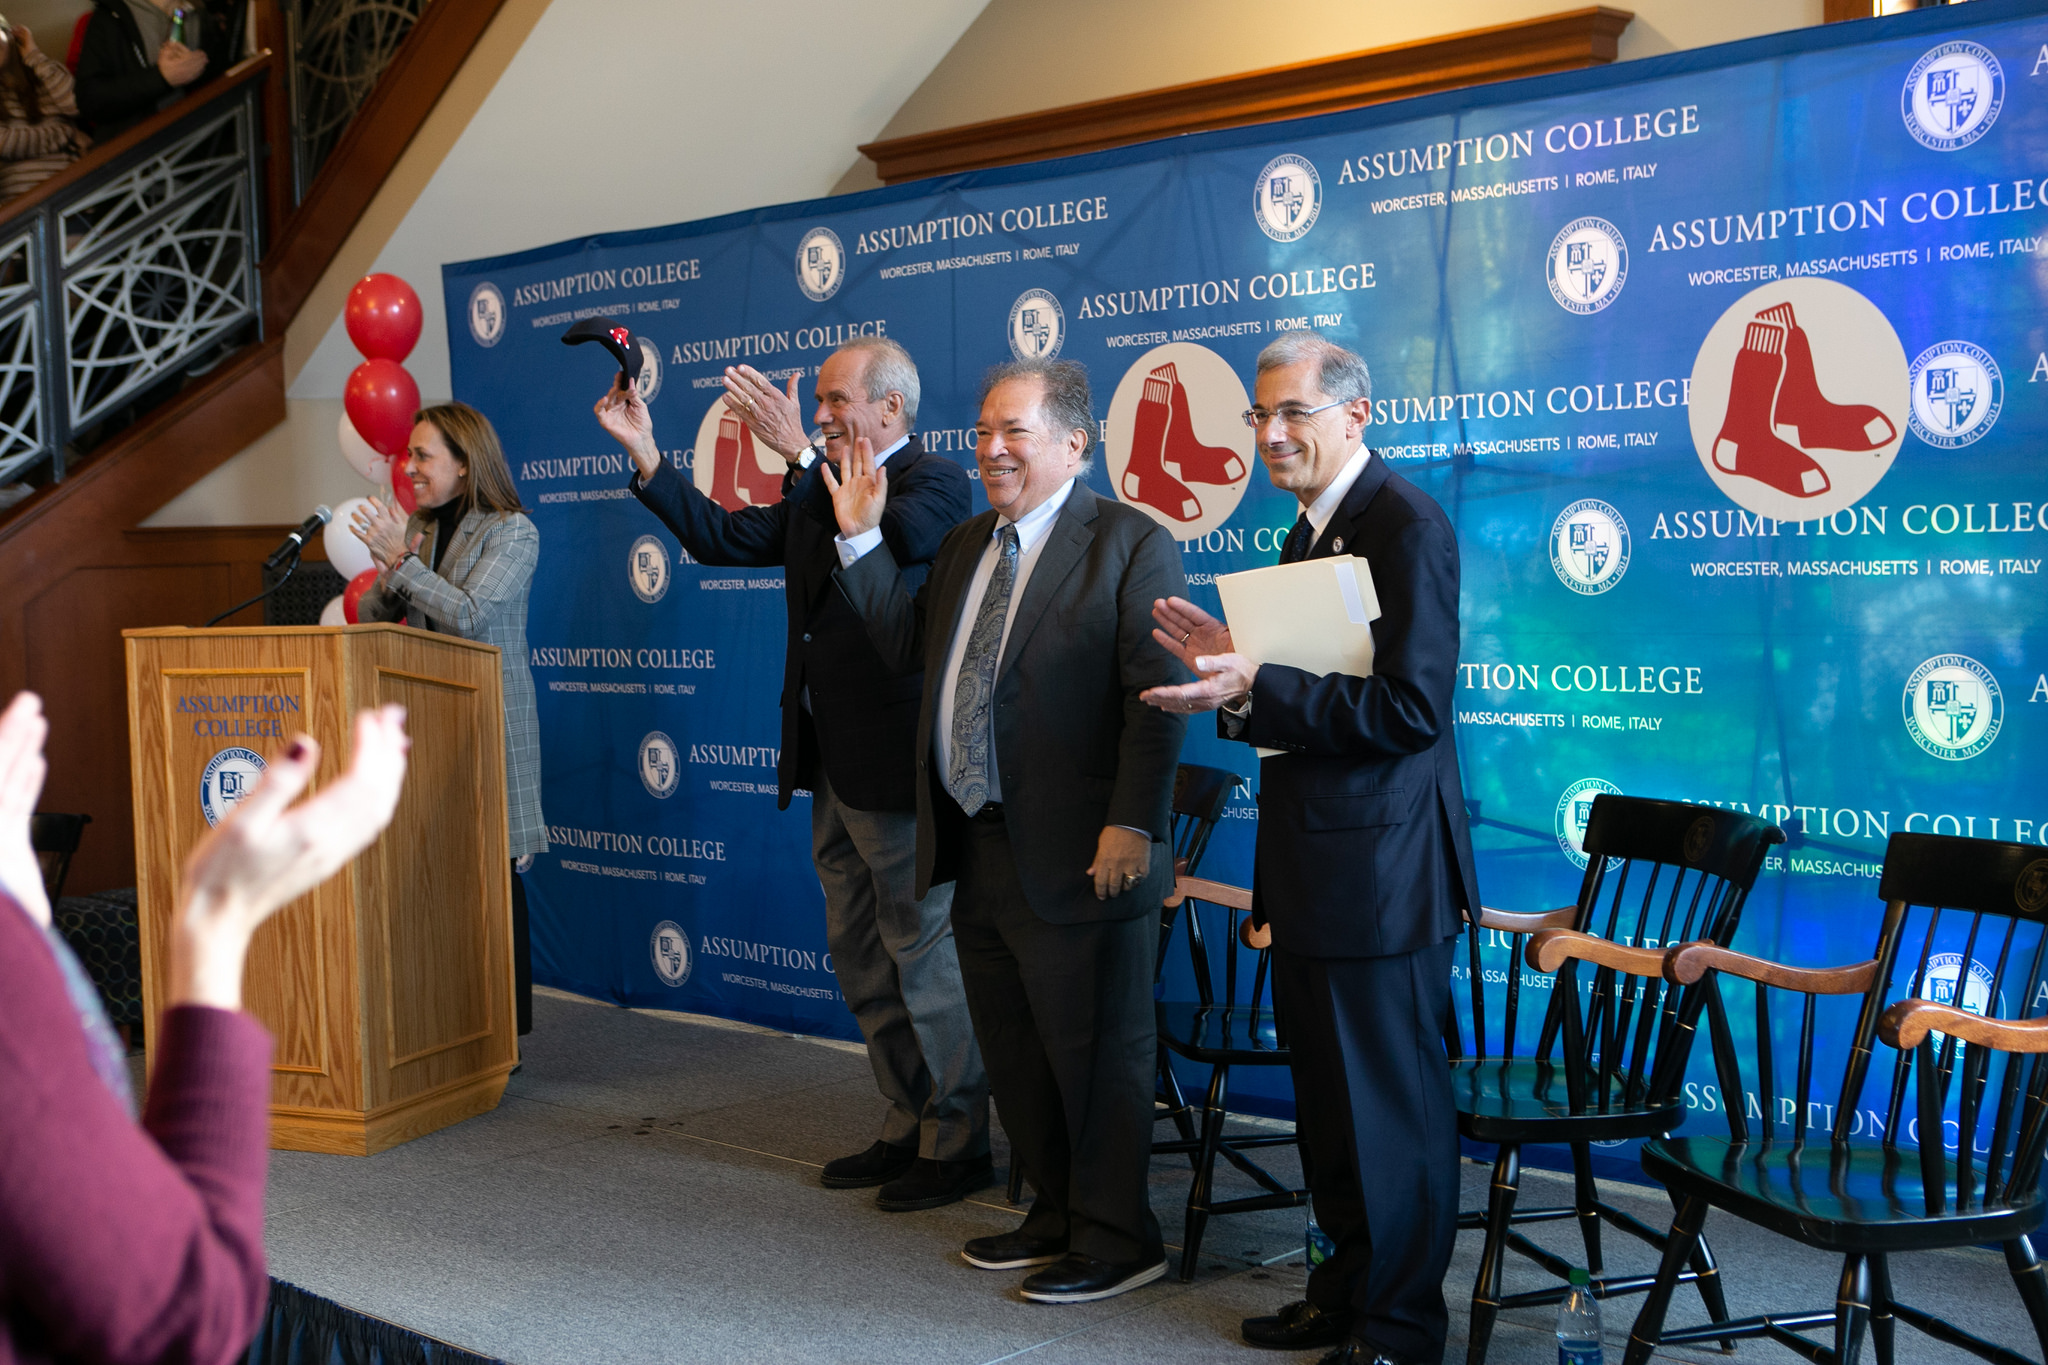 Larry Lucchino, Dr. Charles Steinberg and Francesco C. Cesareo announce a new partnership between Assumption College and the Worcester Red Sox.